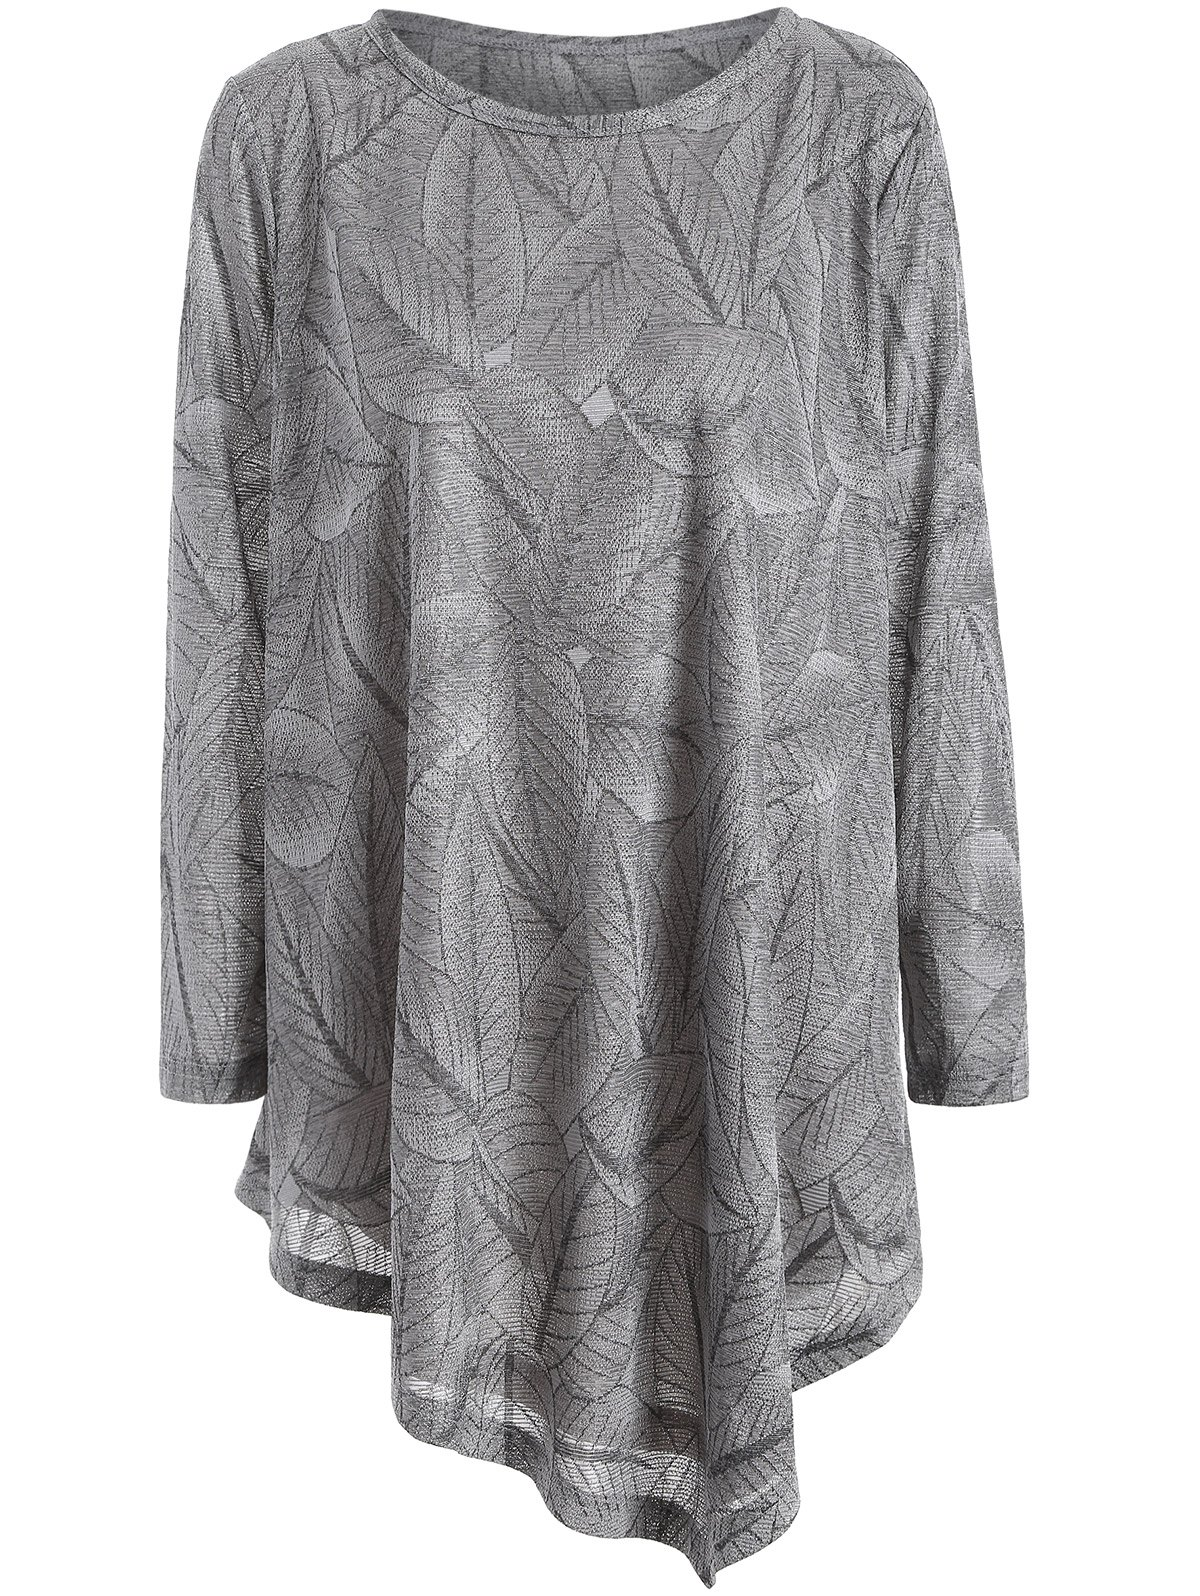 Plus Size Leaf Pattern Long Sleeve Asymmetric Tee - GRAY 2XL